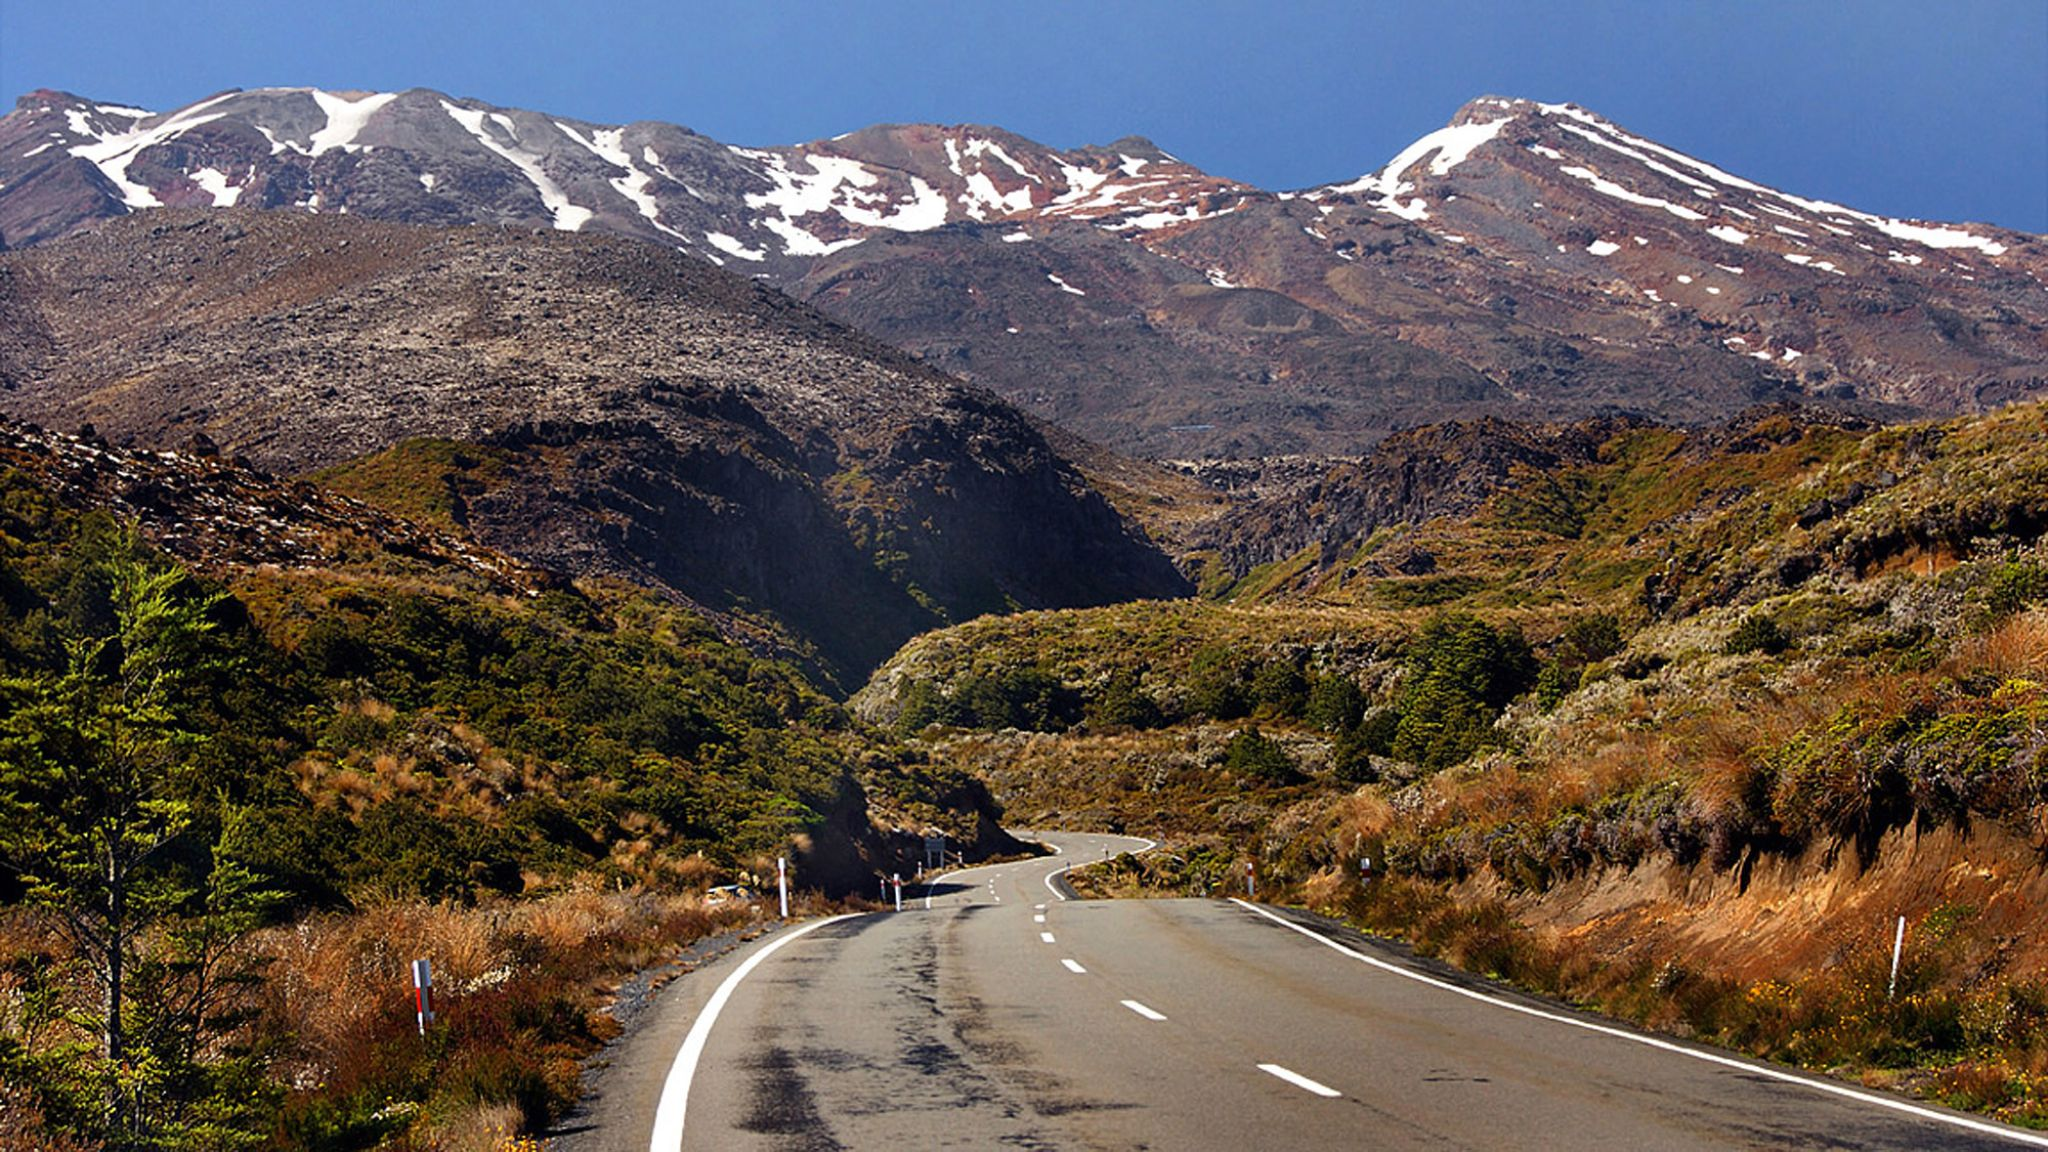 Road to Mt Ruapehu by DraganKeca